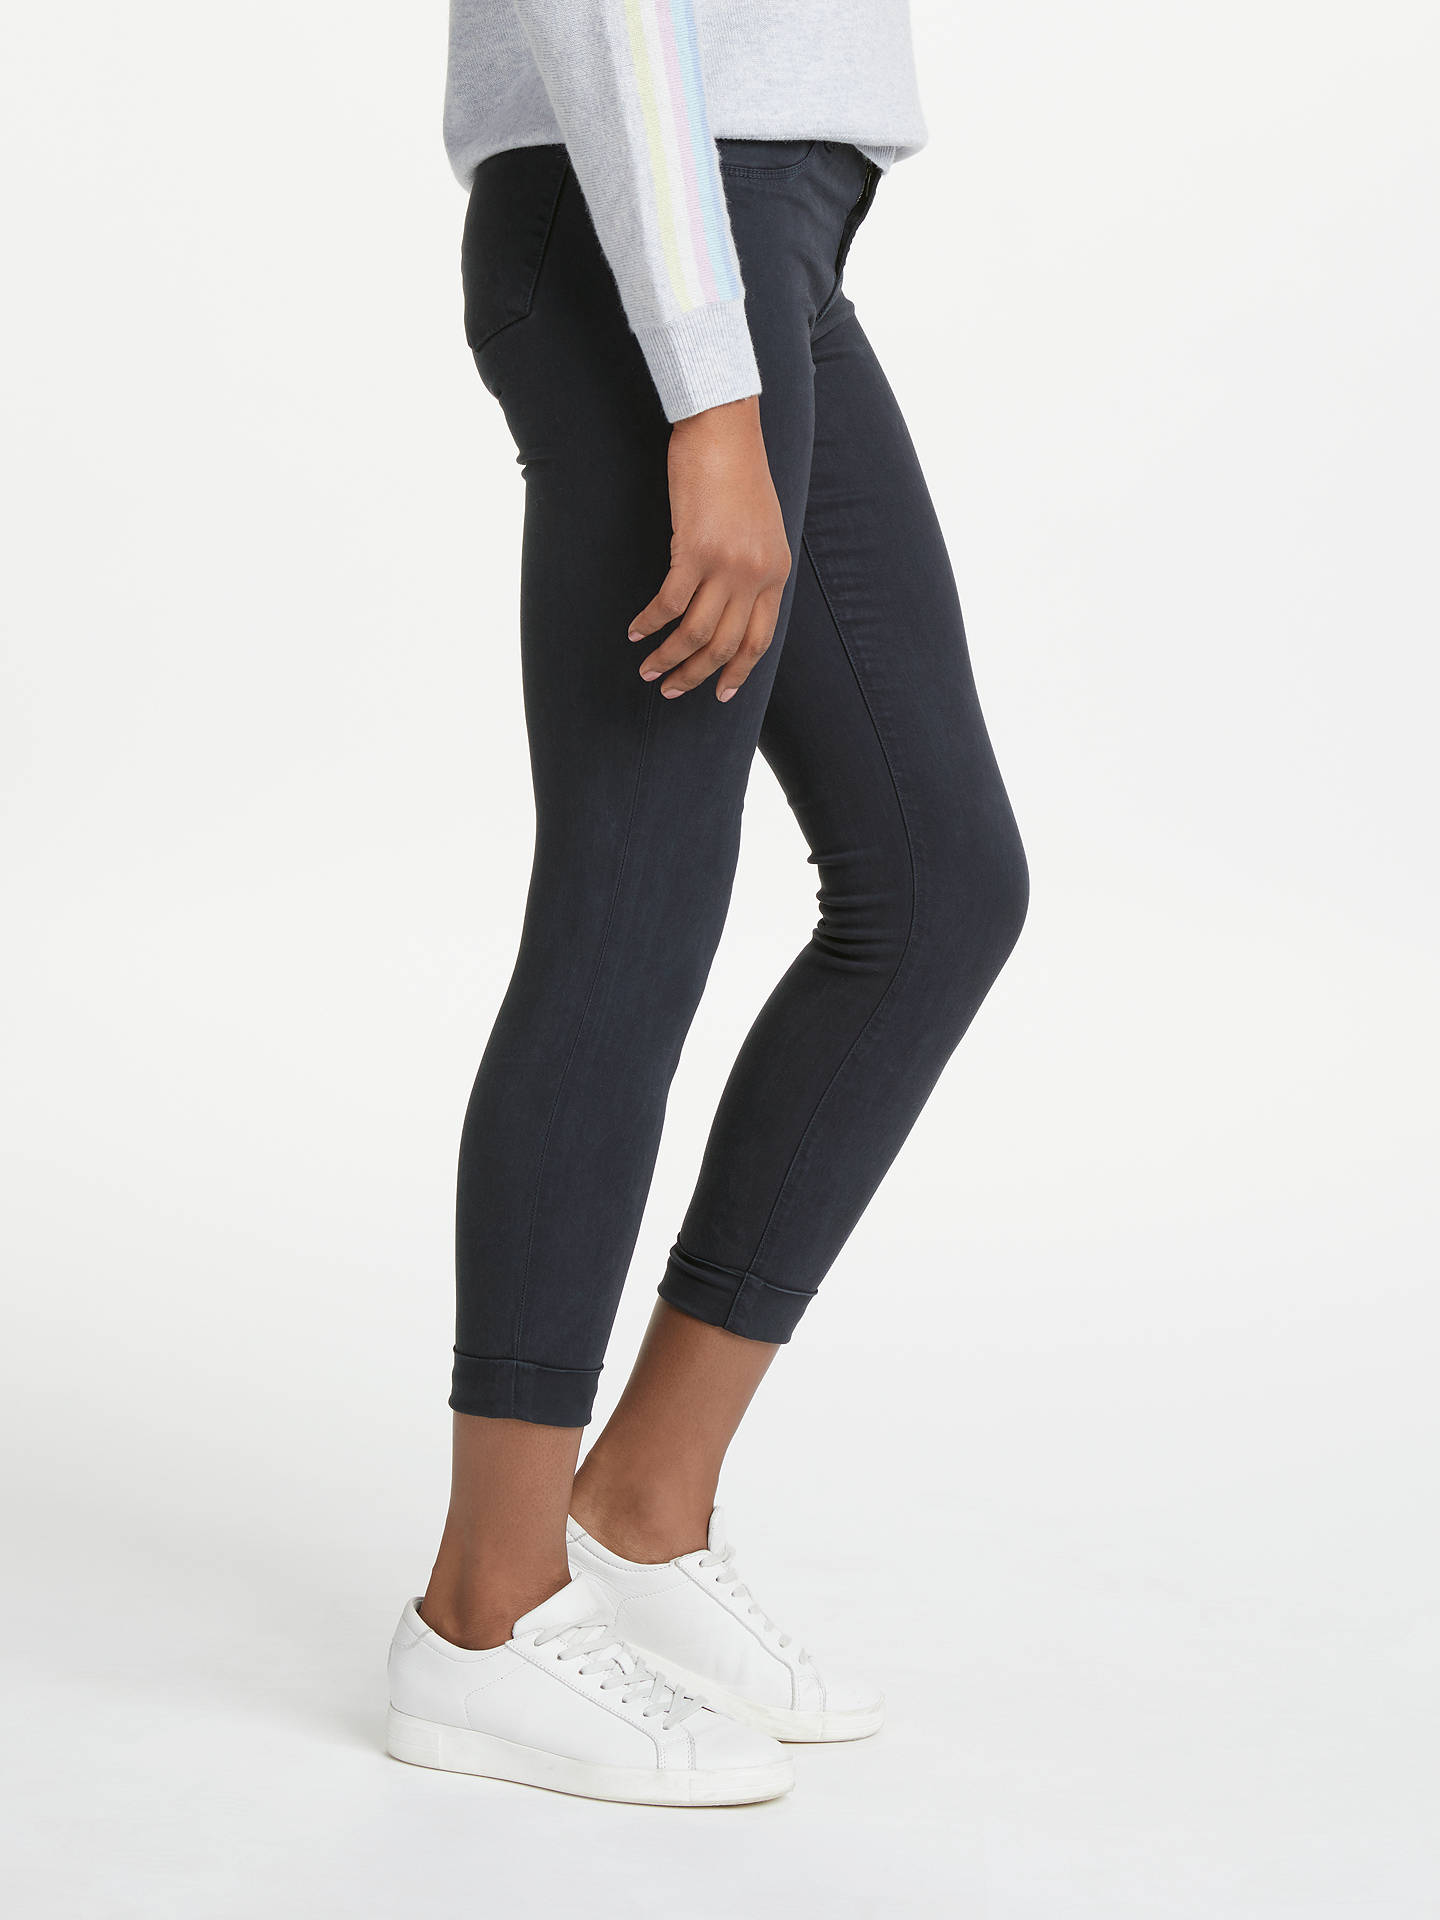 BuyJ Brand Anja Mid Rise Cropped Skinny Jeans, Dark Navy, 24 Online at johnlewis.com